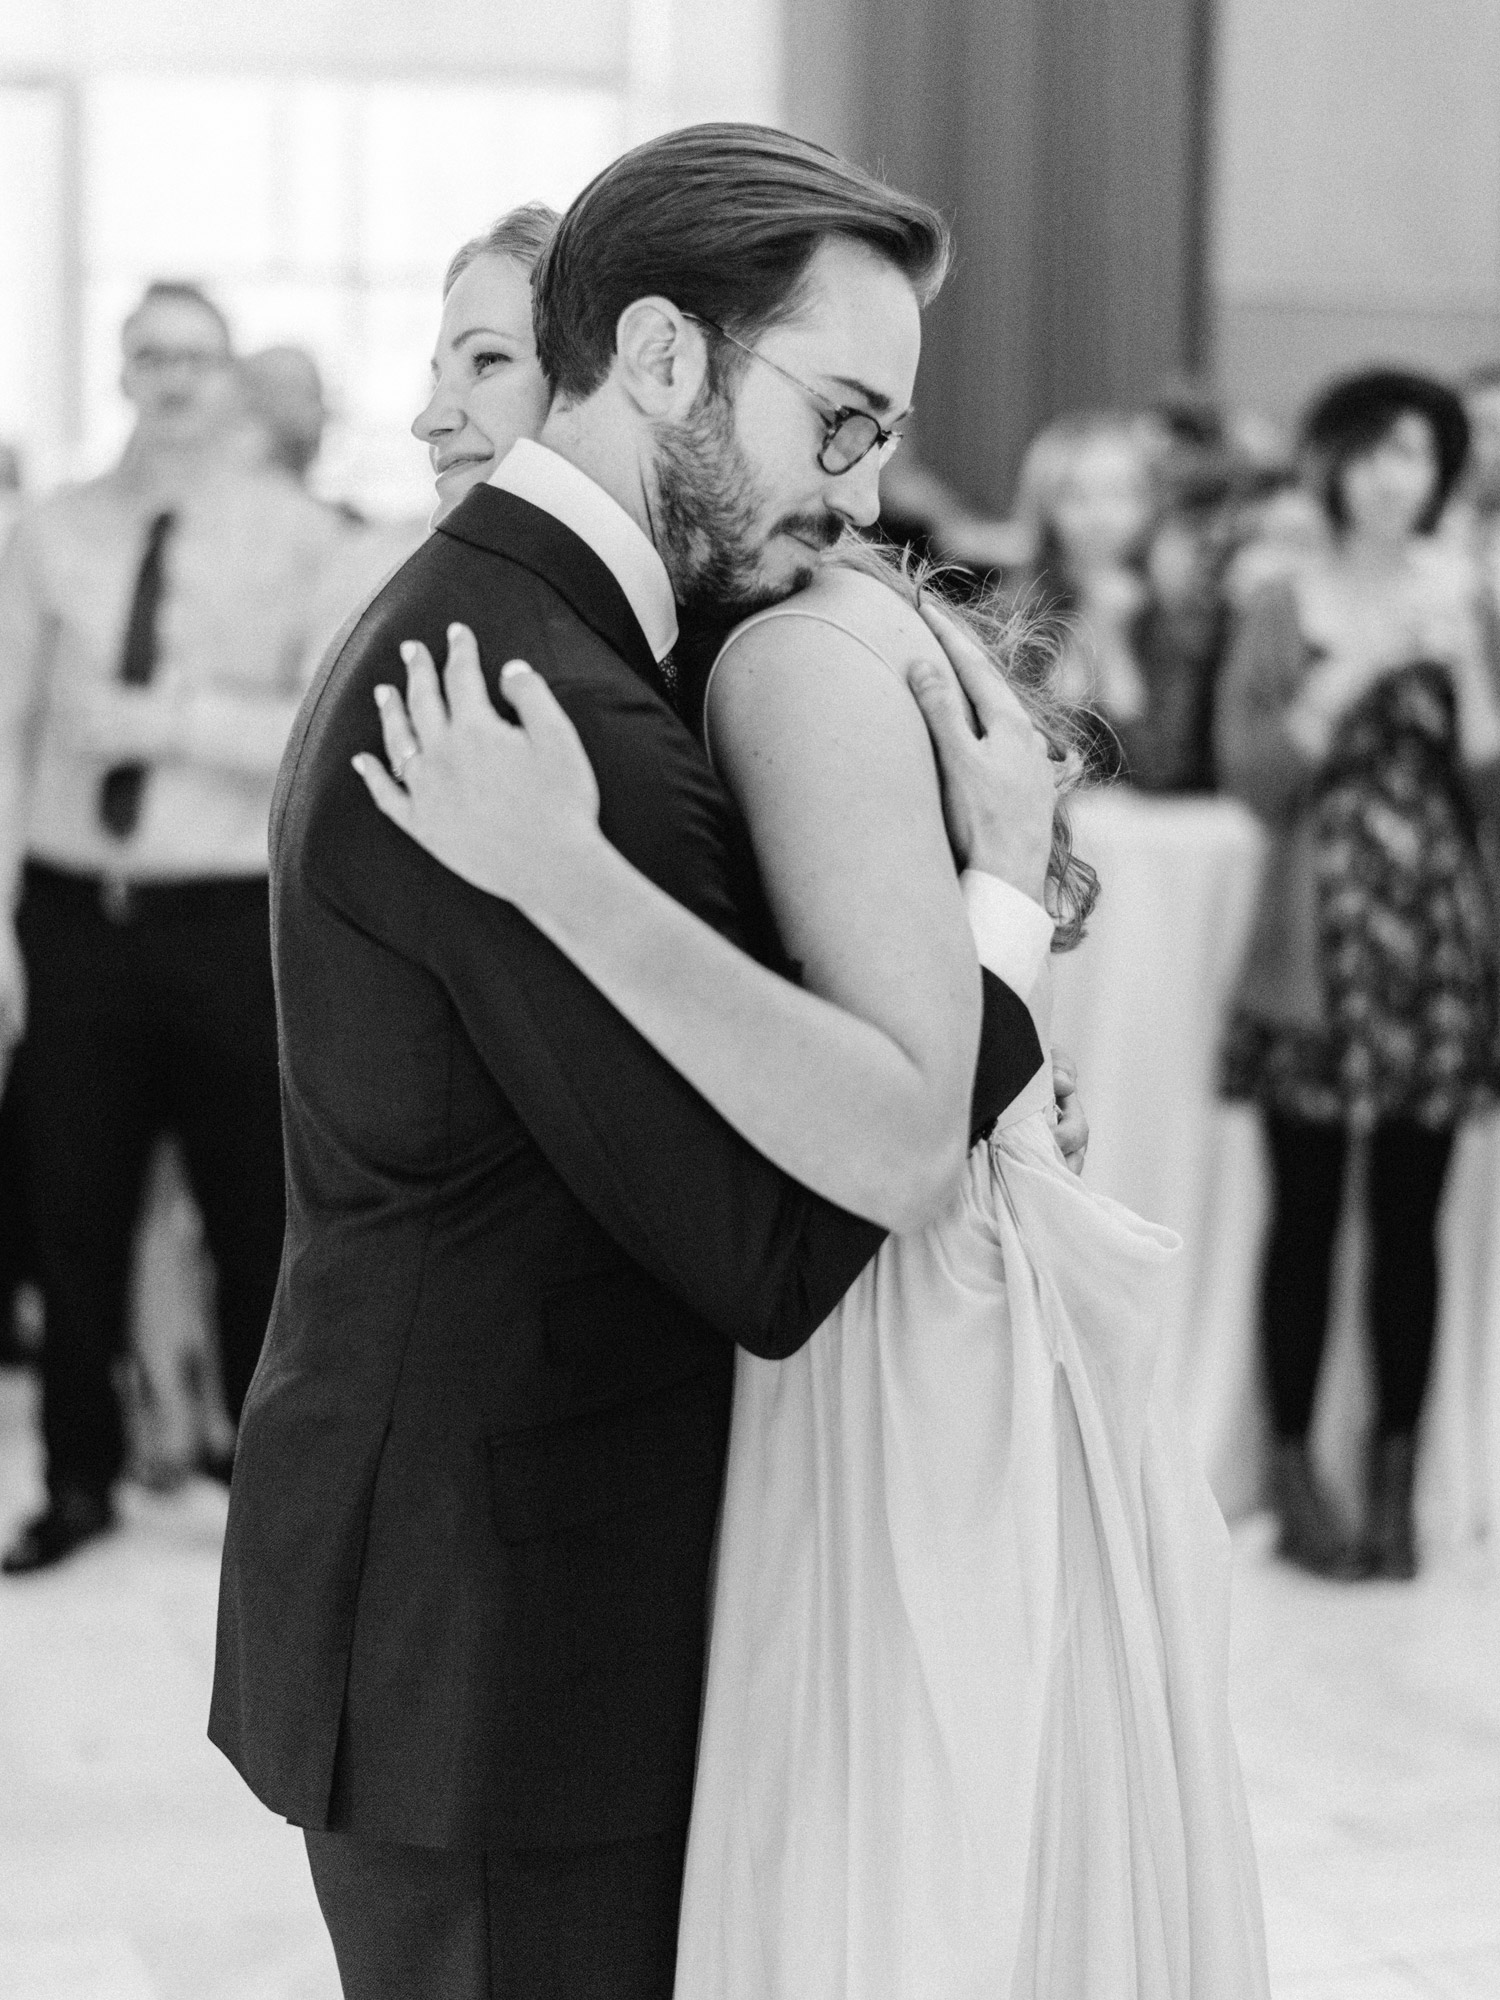 Bride and groom share first dance at Des Moines Art Center Wedding